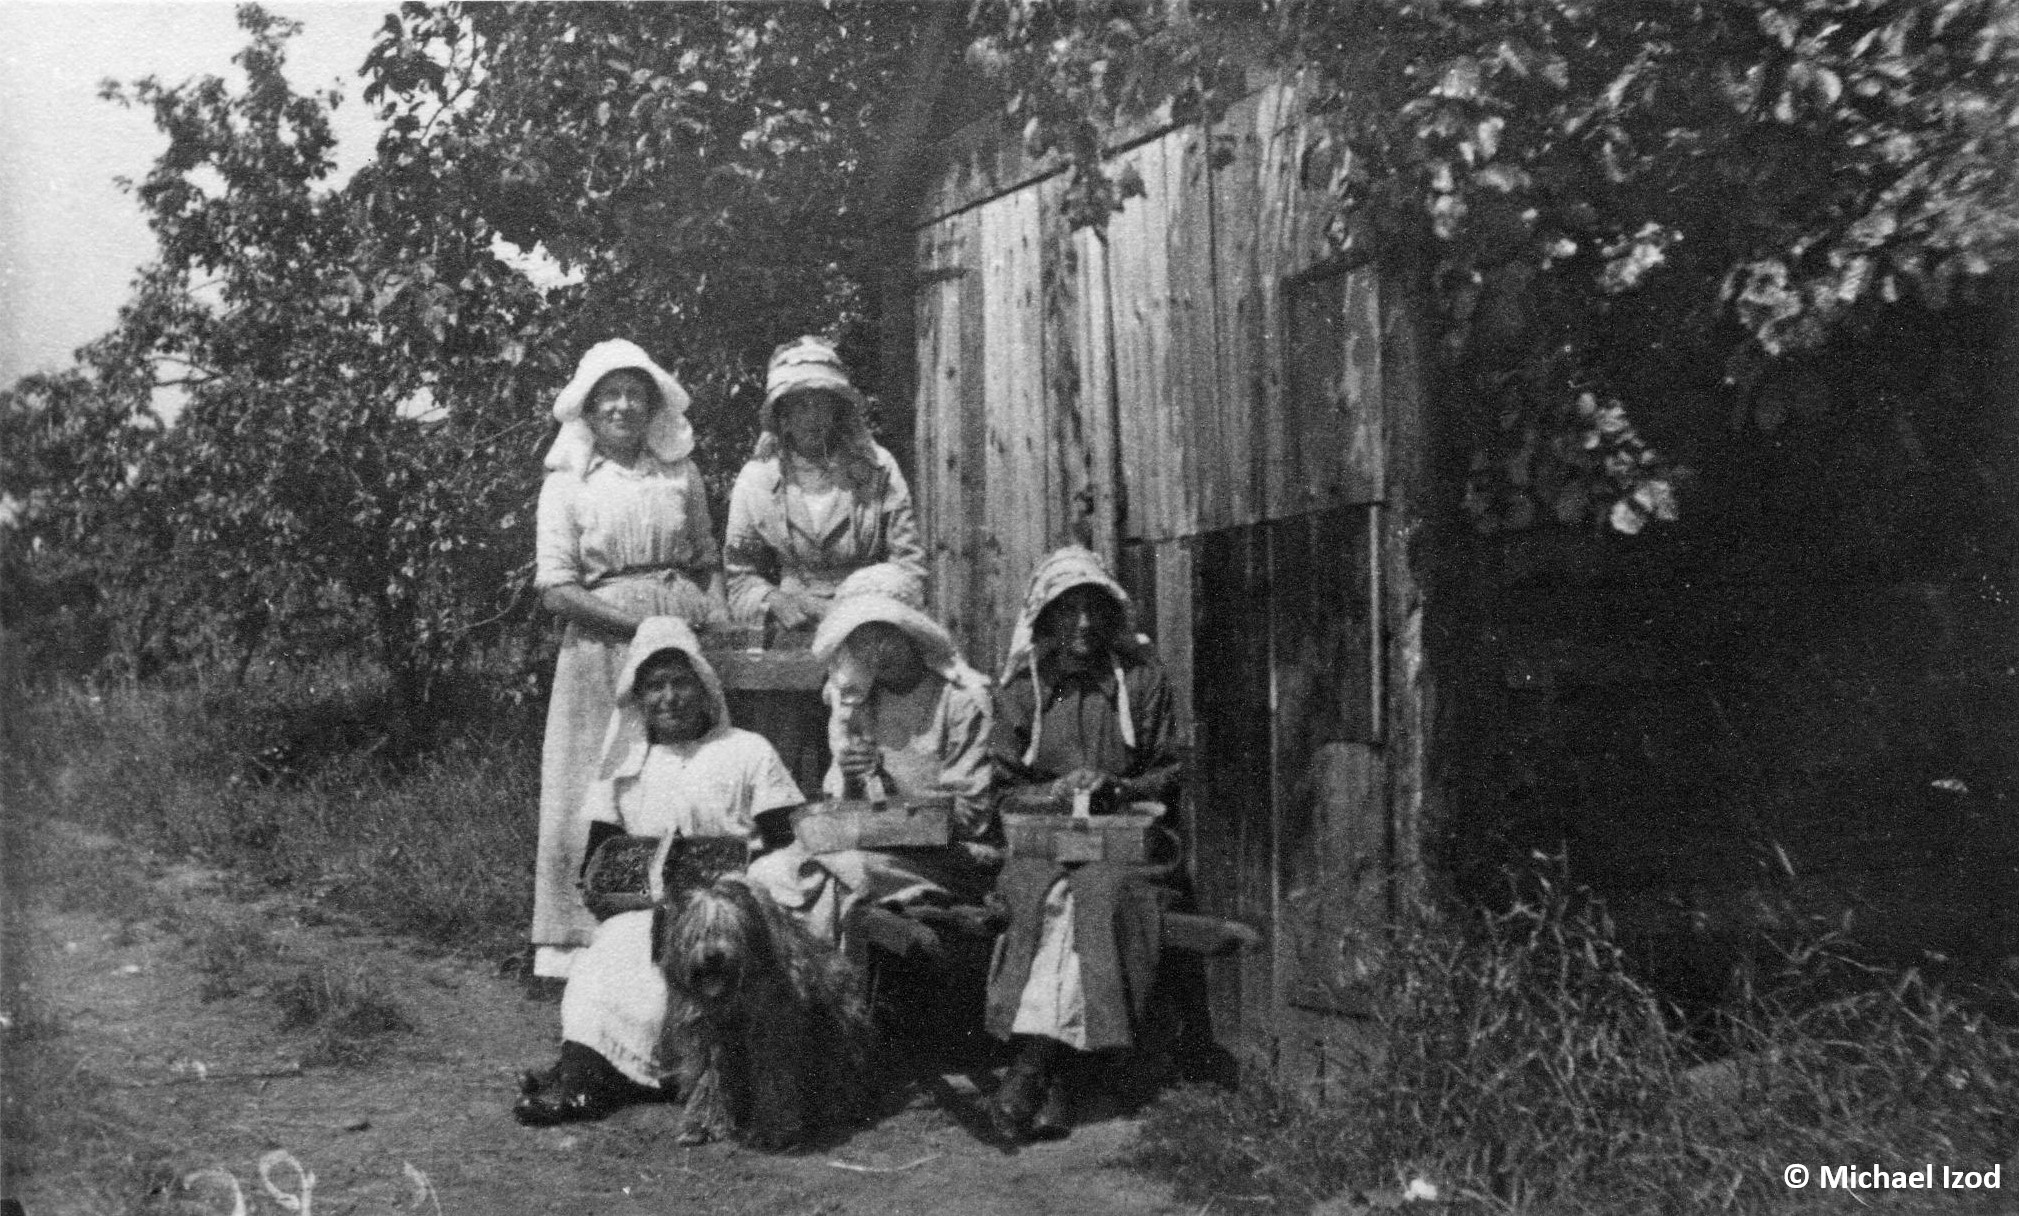 Five women with baskets of fruit by a wooden shed in an orchard